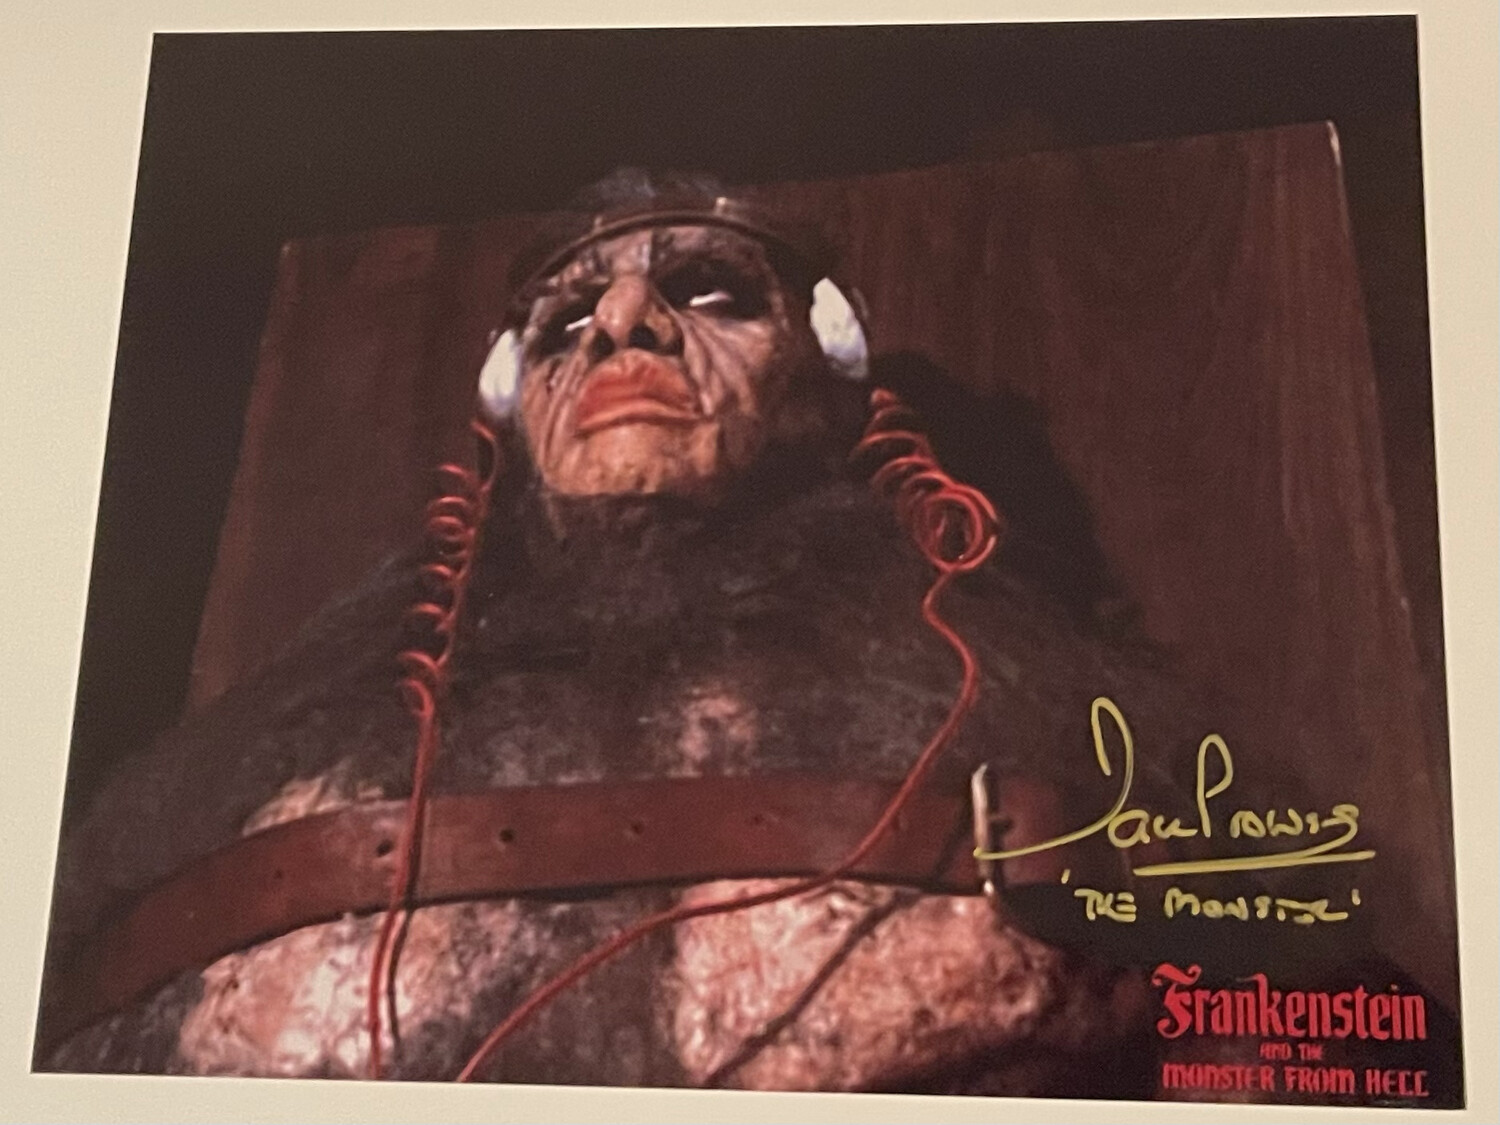 8X10 PHOTO SIGNED BY DAVE PROWSE